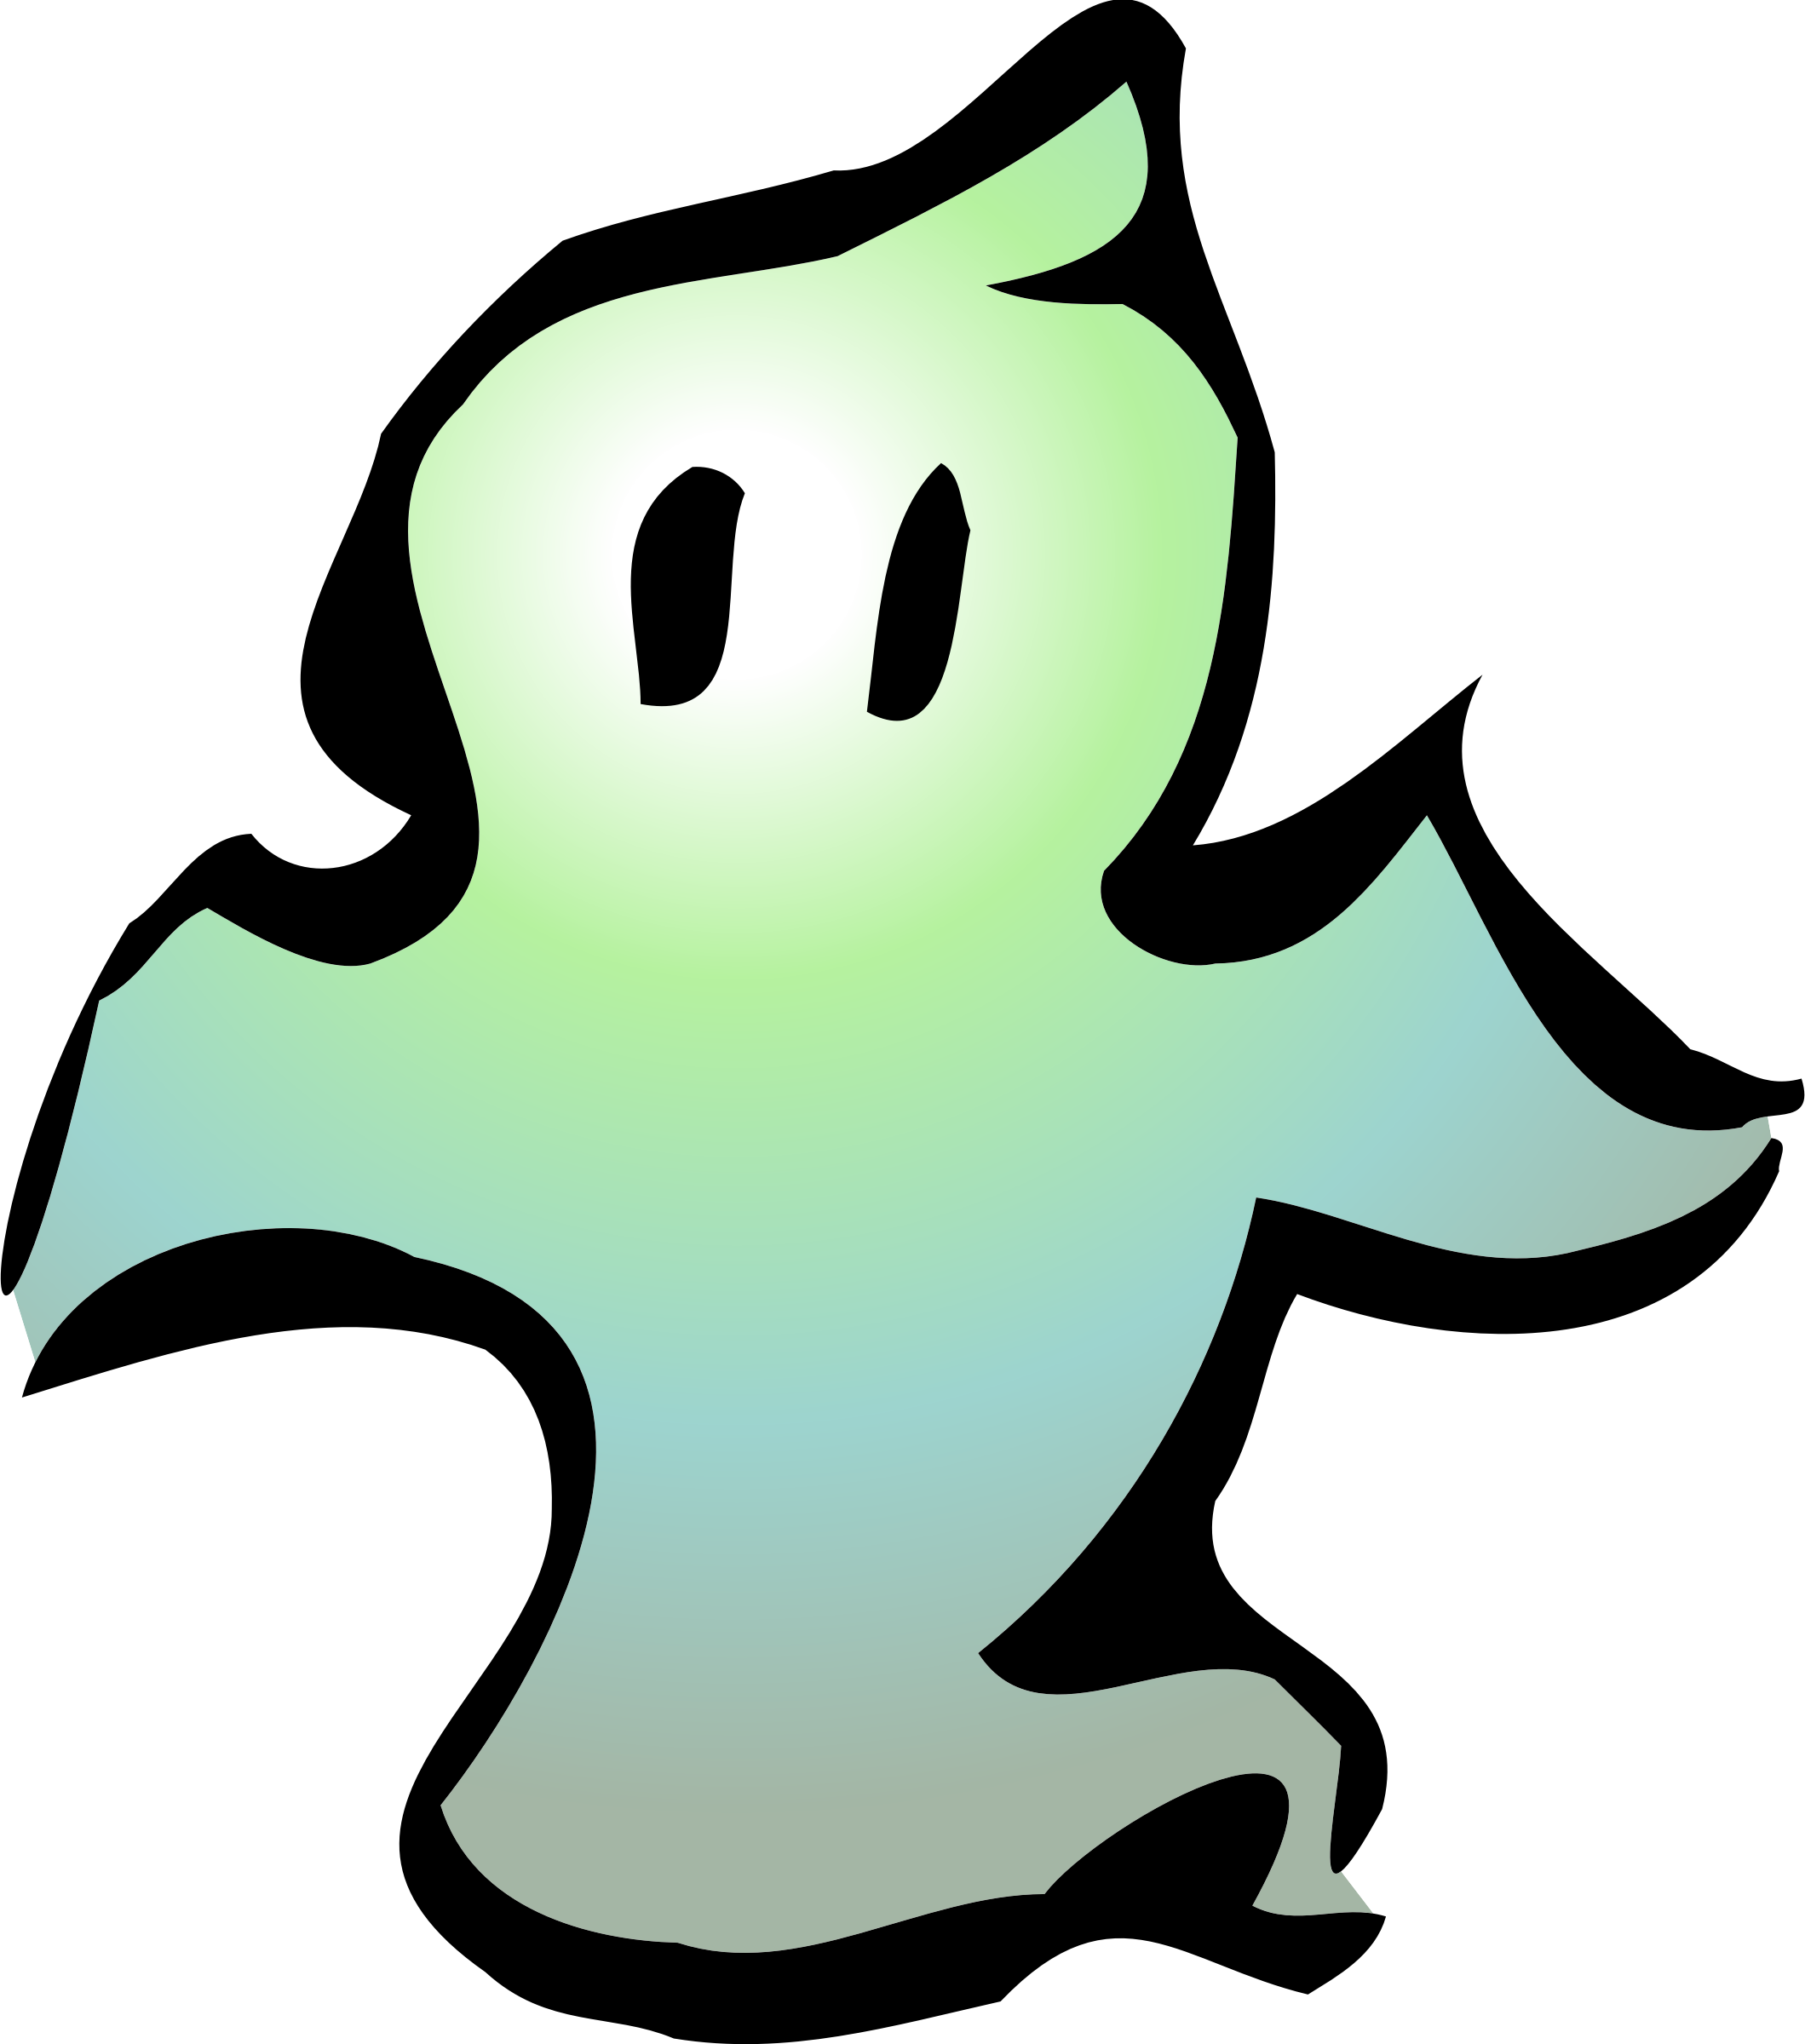 Ghost clipart traditional. Icon icons png free